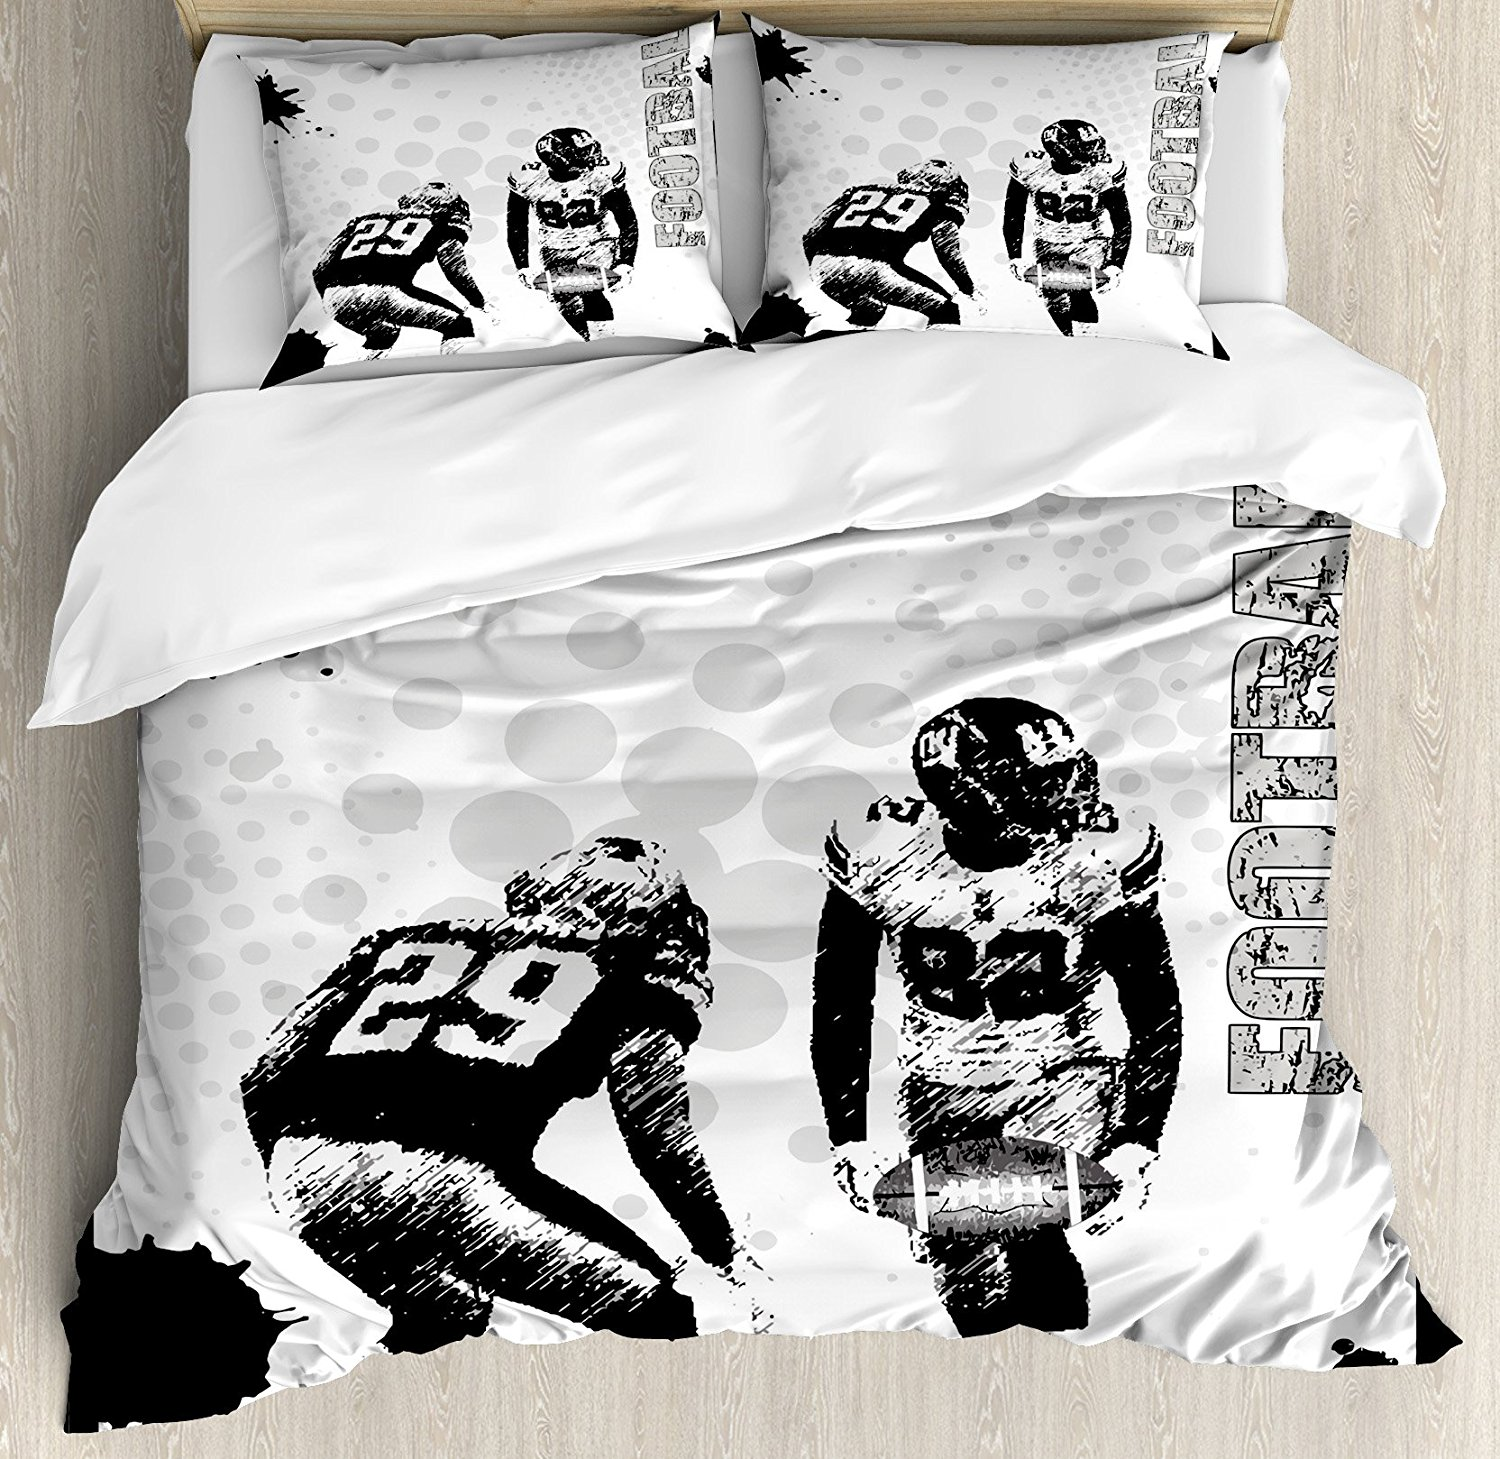 Sports Duvet Cover Set Grungy American Football Image International Team World Cup Kick Play Speed Victory, 4 Piece Bedding Set